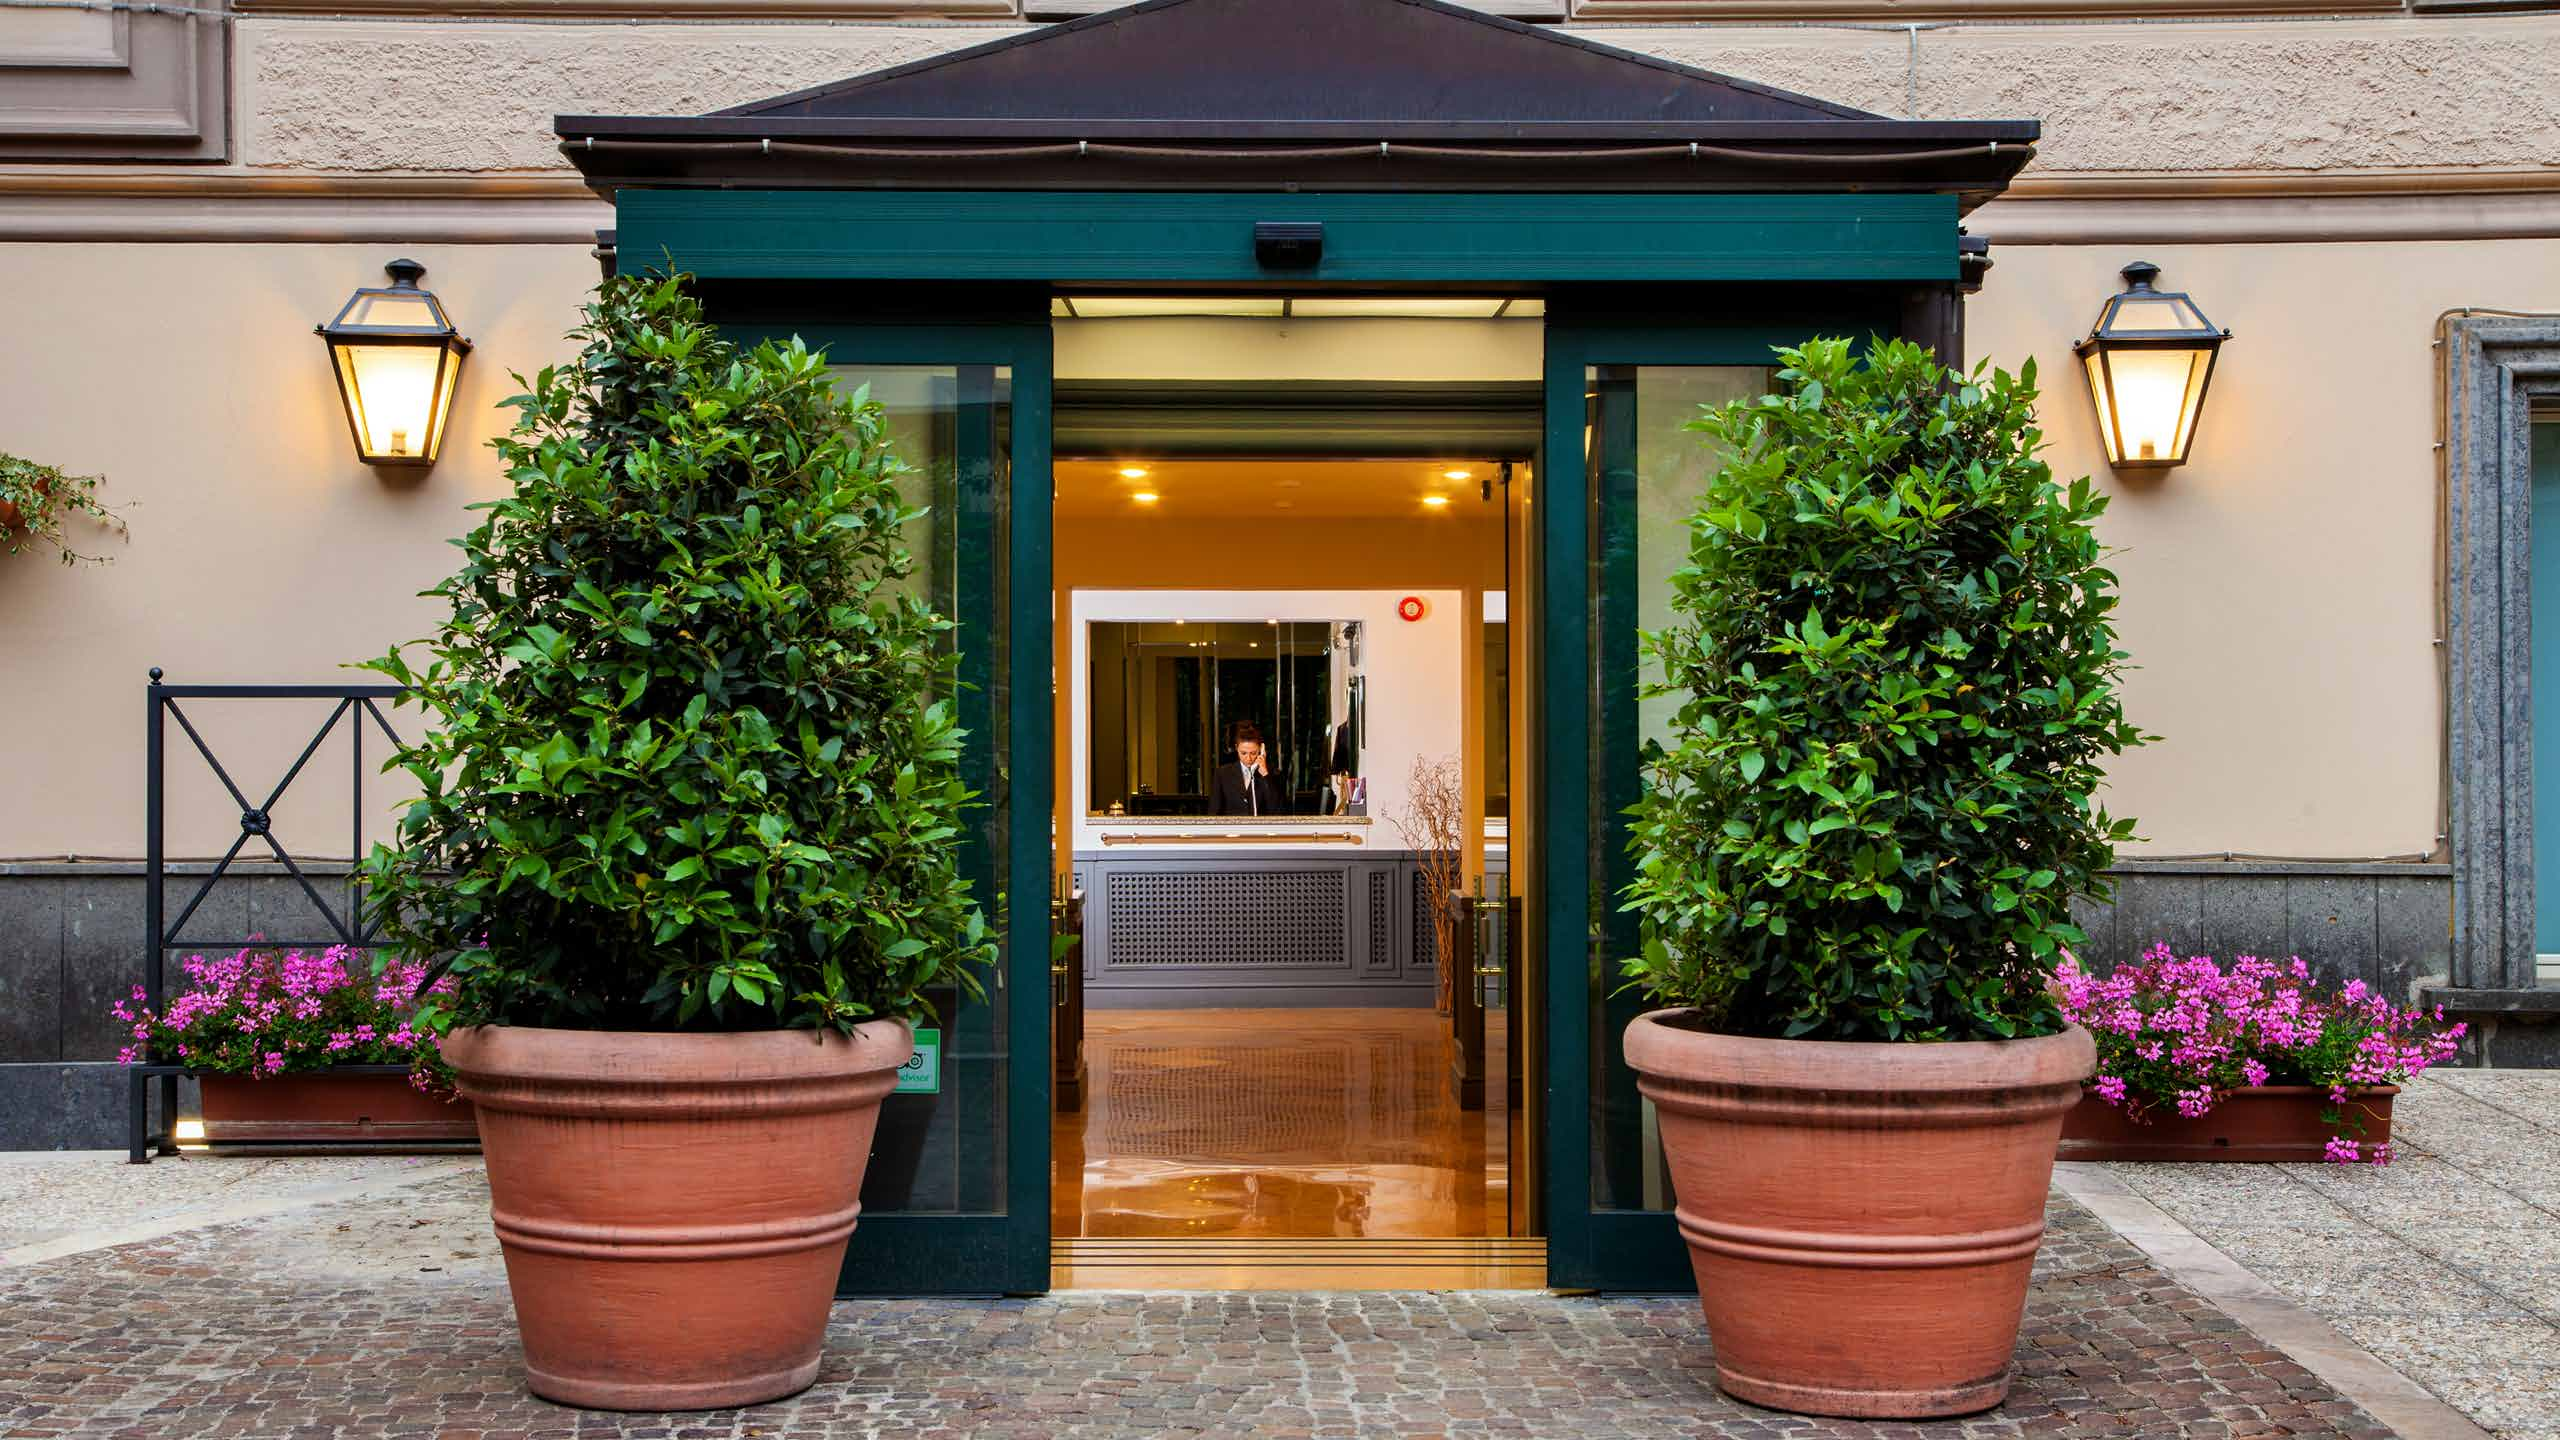 hotel-buenos-aires-rome-gallery-1